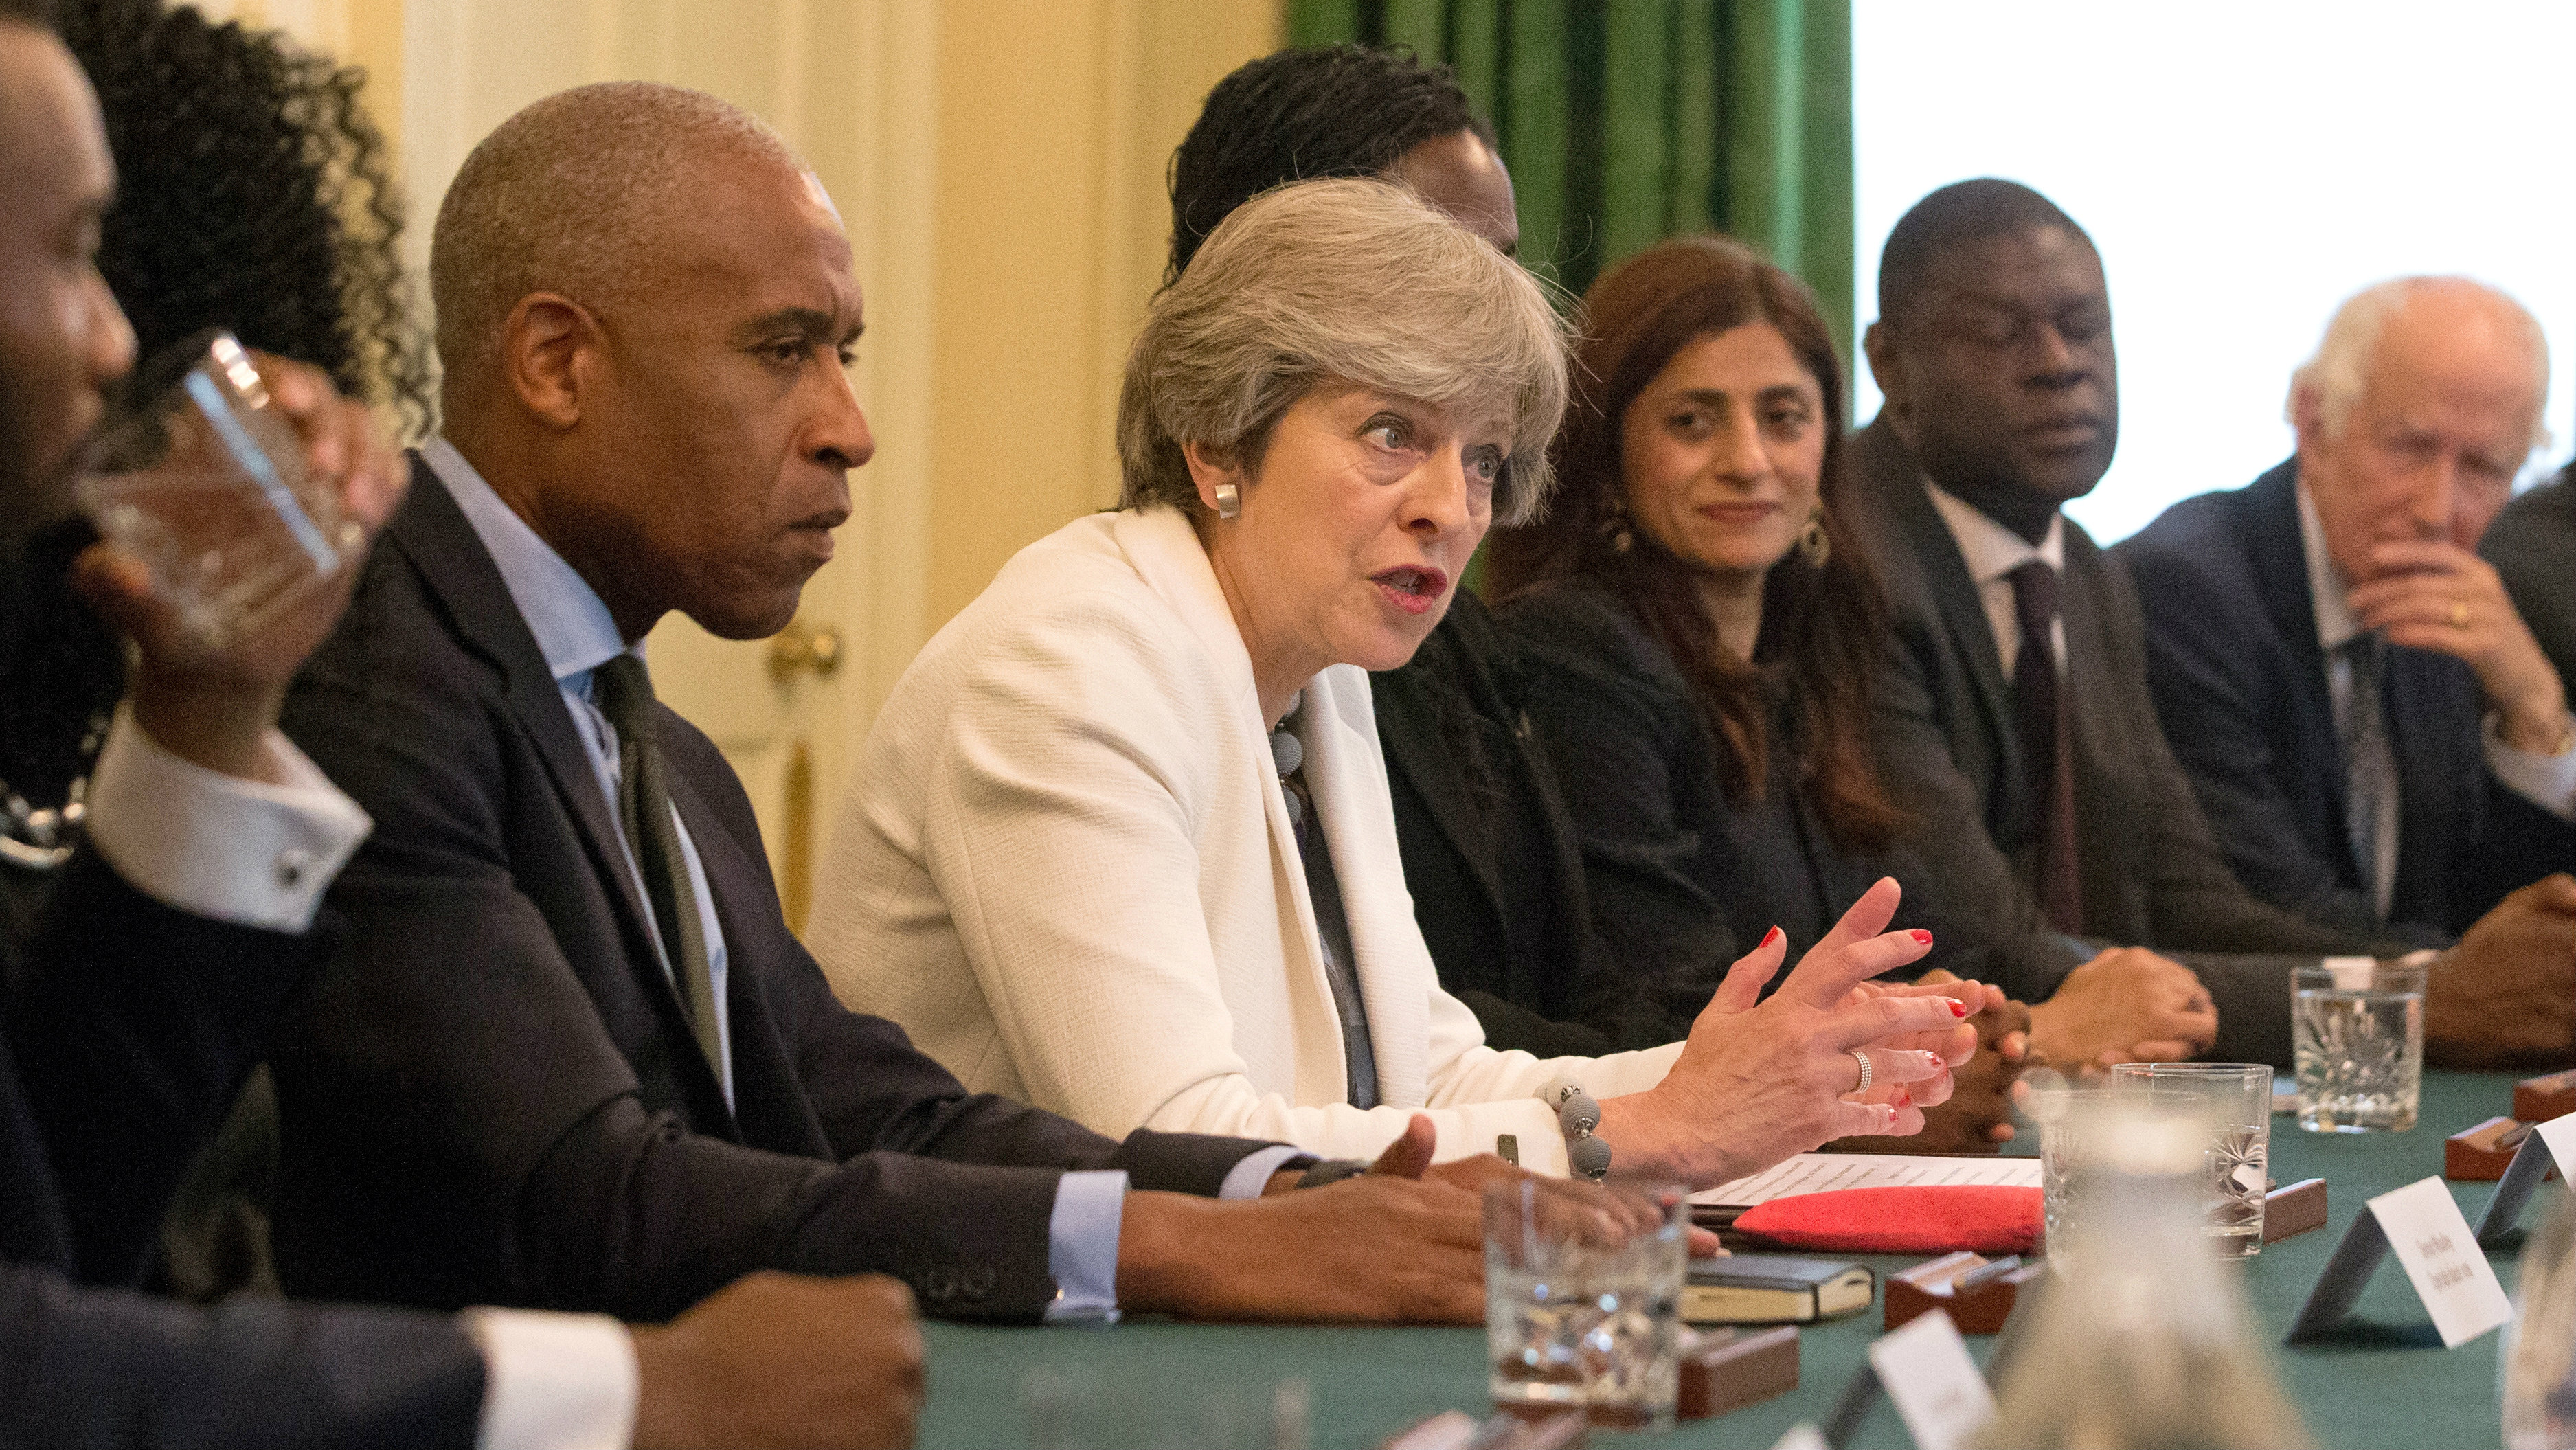 Britain's Prime Minister, Theresa May, hosts a discussion around the cabinet table on the findings of the Race Disparity Unit